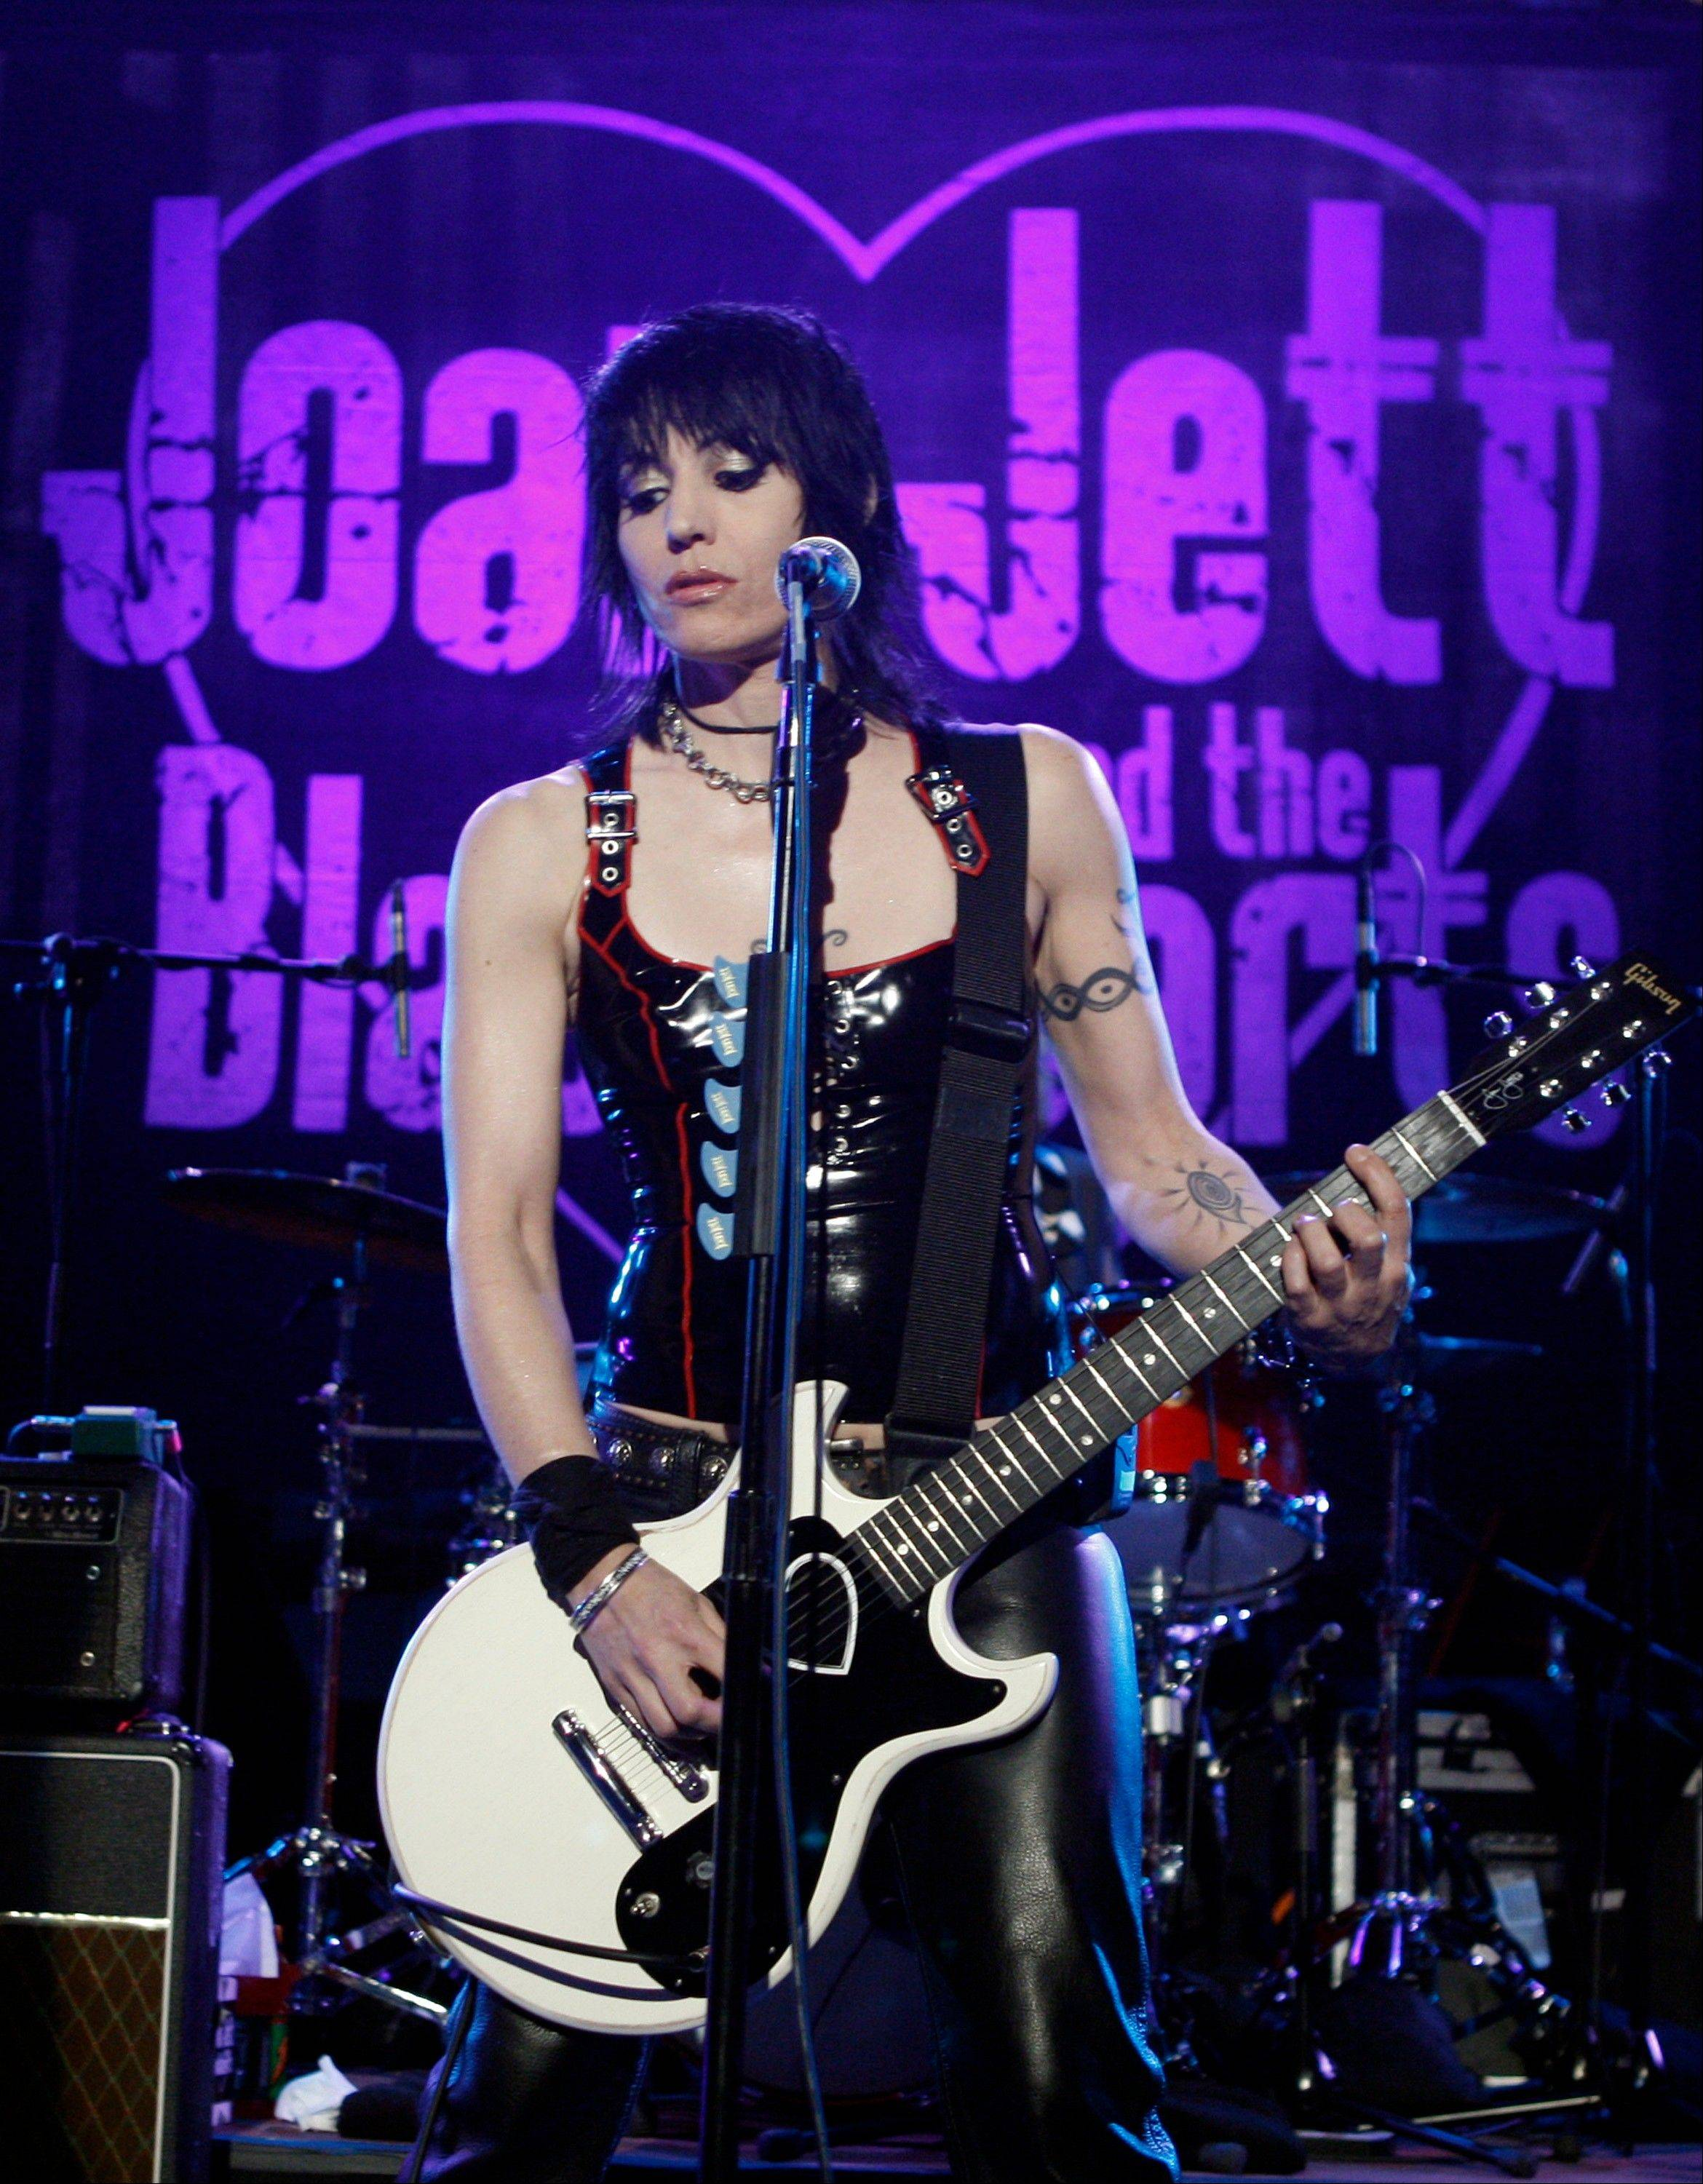 Joan Jett and the Blackhearts have been nominated once again for induction into the Rock and Roll Hall of Fame in 2013.